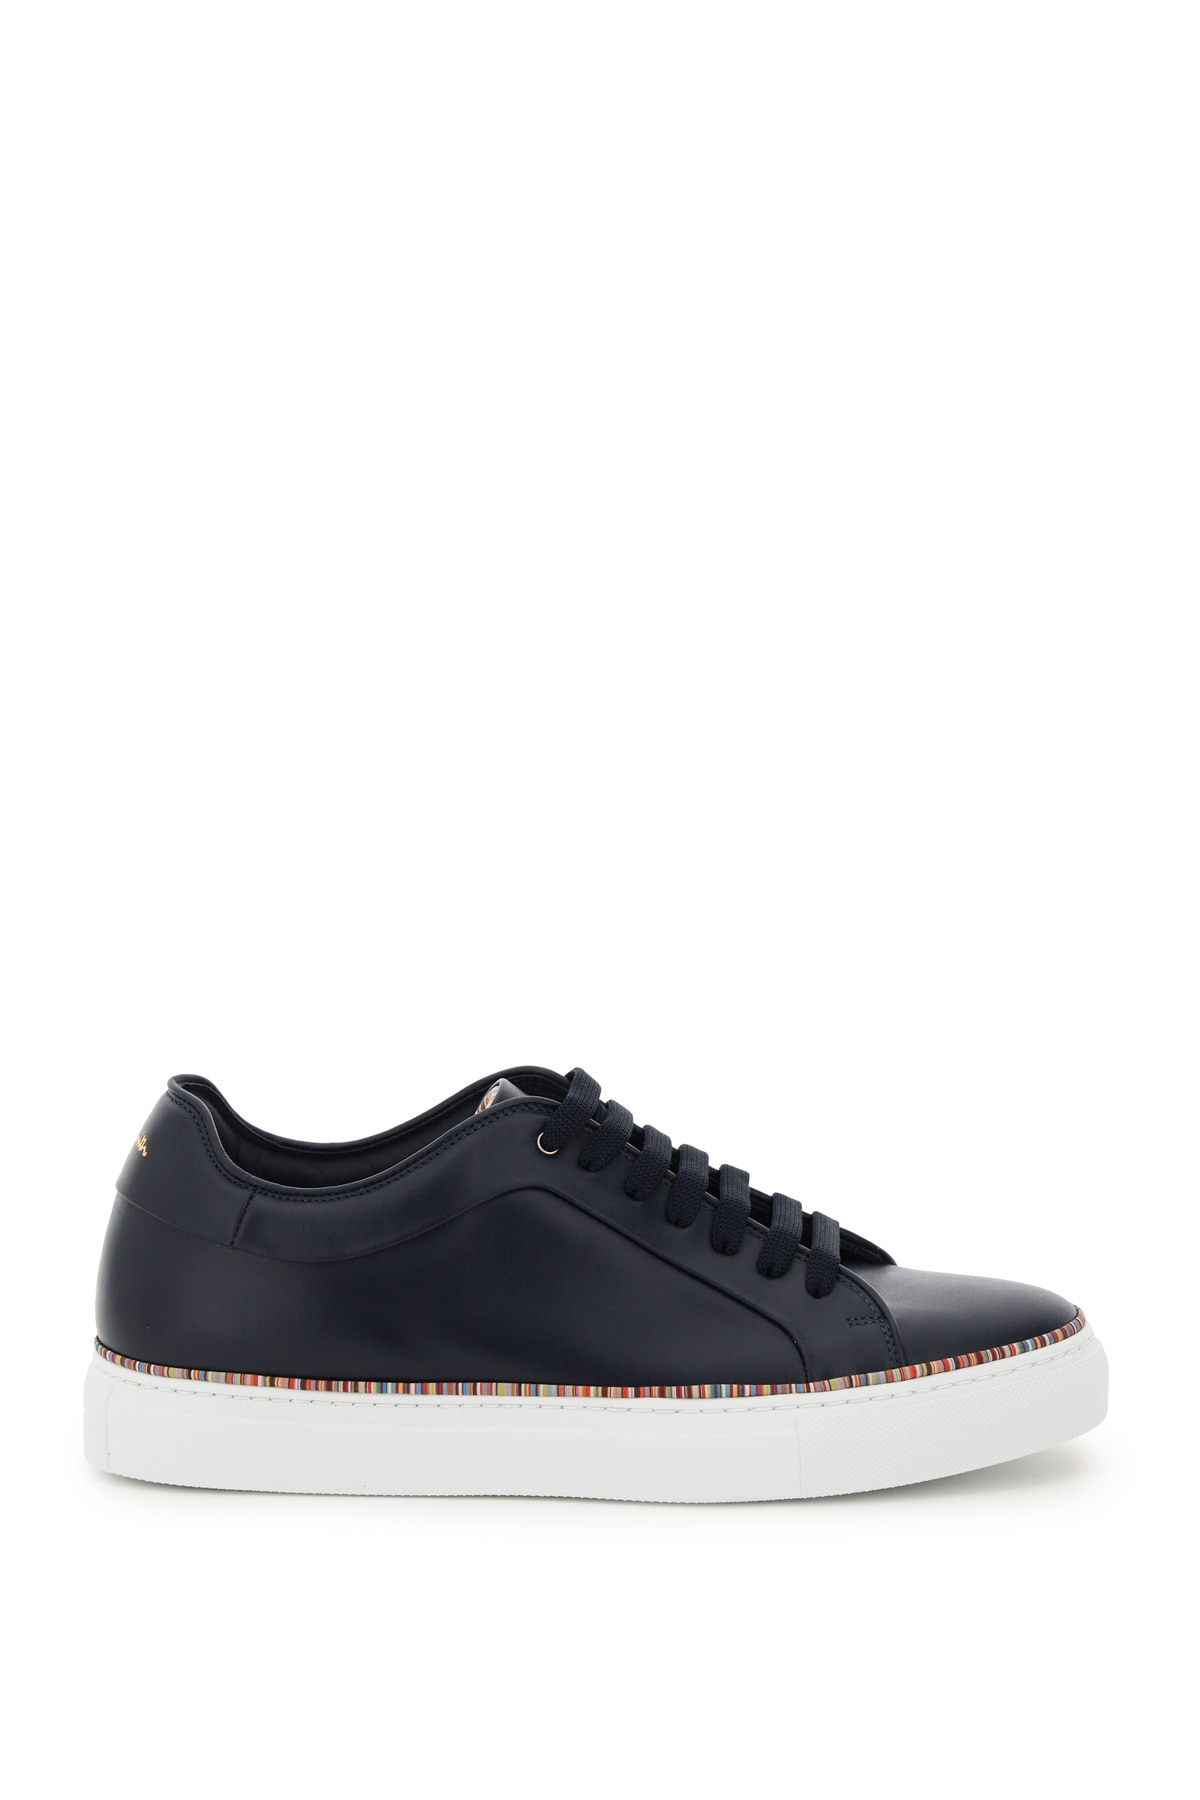 PAUL SMITH BASSO SNEAKERS WITH PIPING 8 Leather